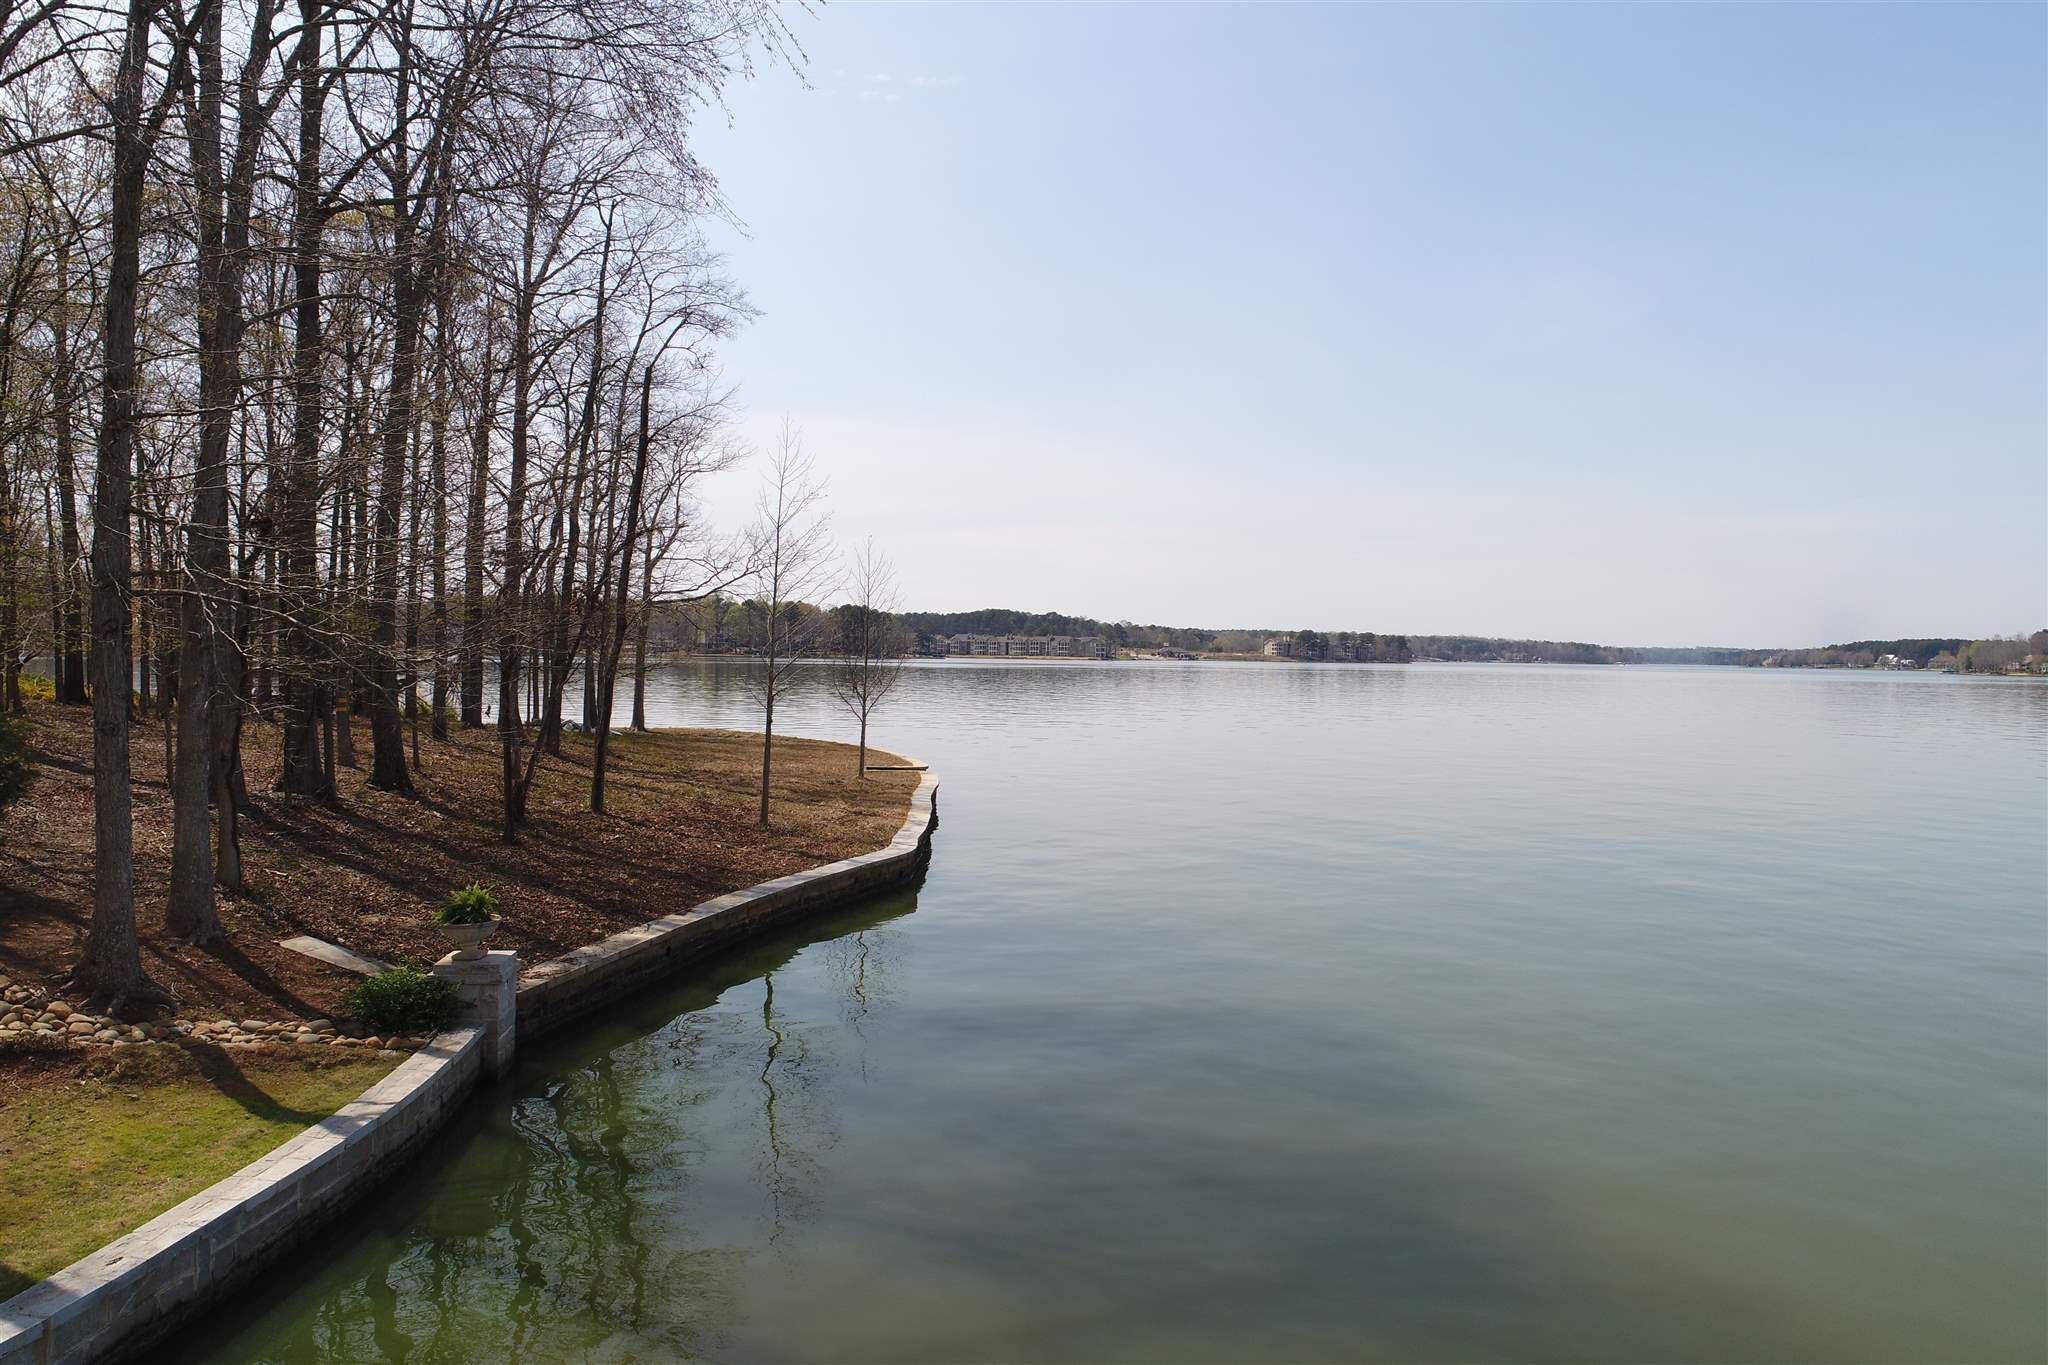 One of Lake Oconee Homes for Sale at 137 CAROLYN DRIVE AS